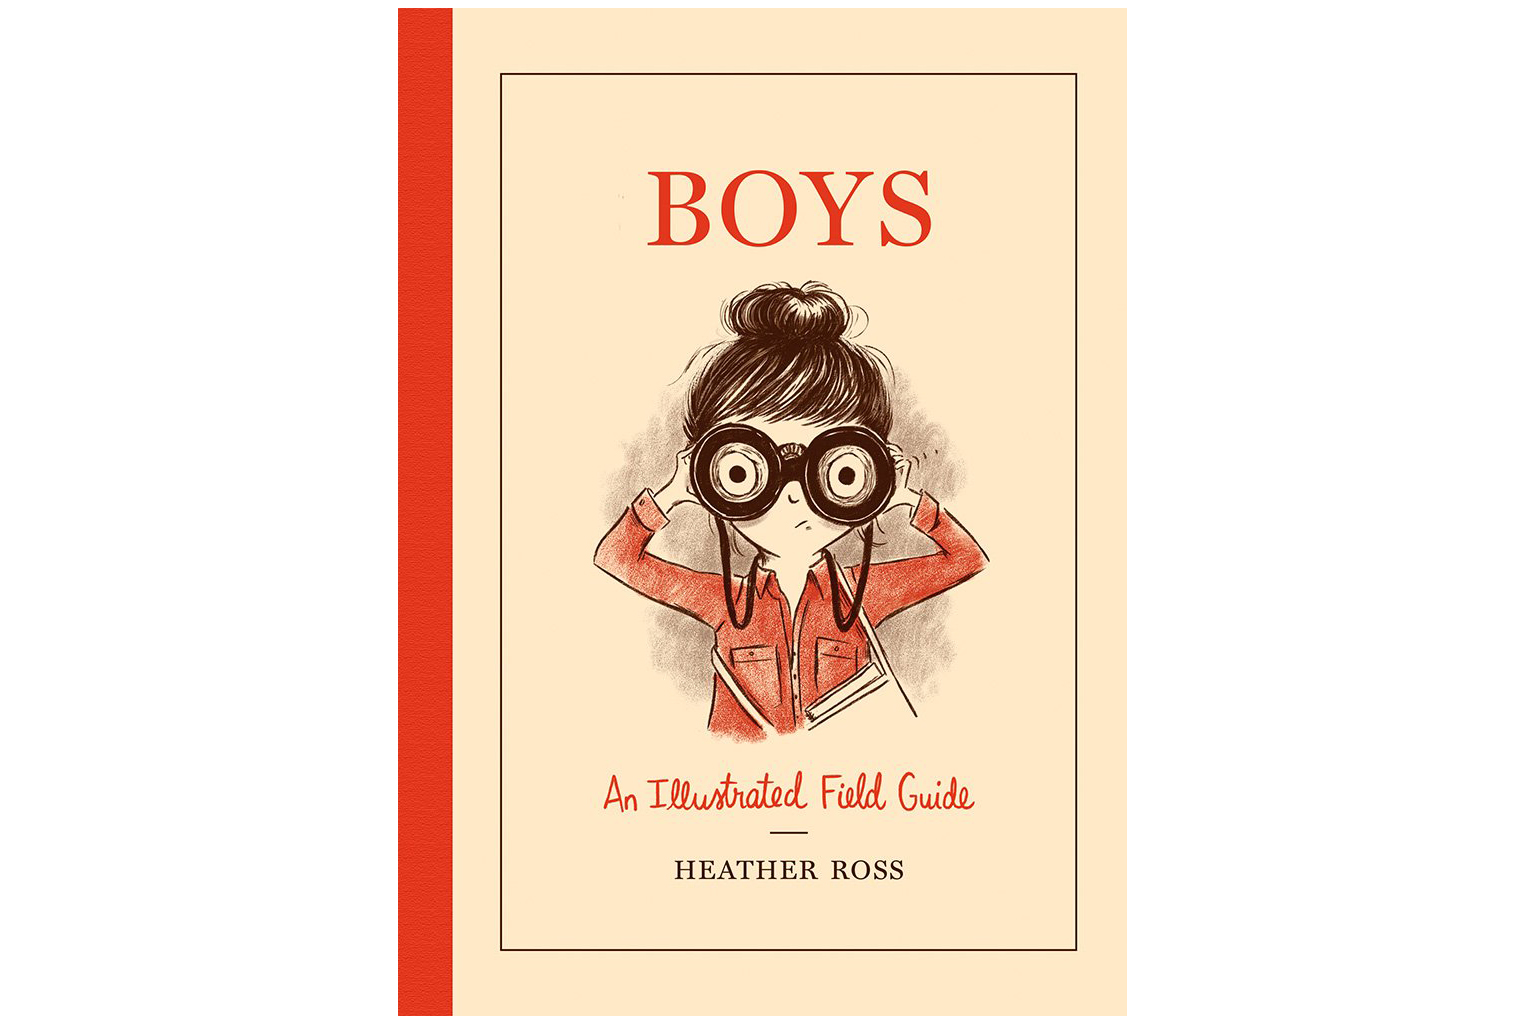 Boys: an Illustrated Field Guide, by Heather Ross